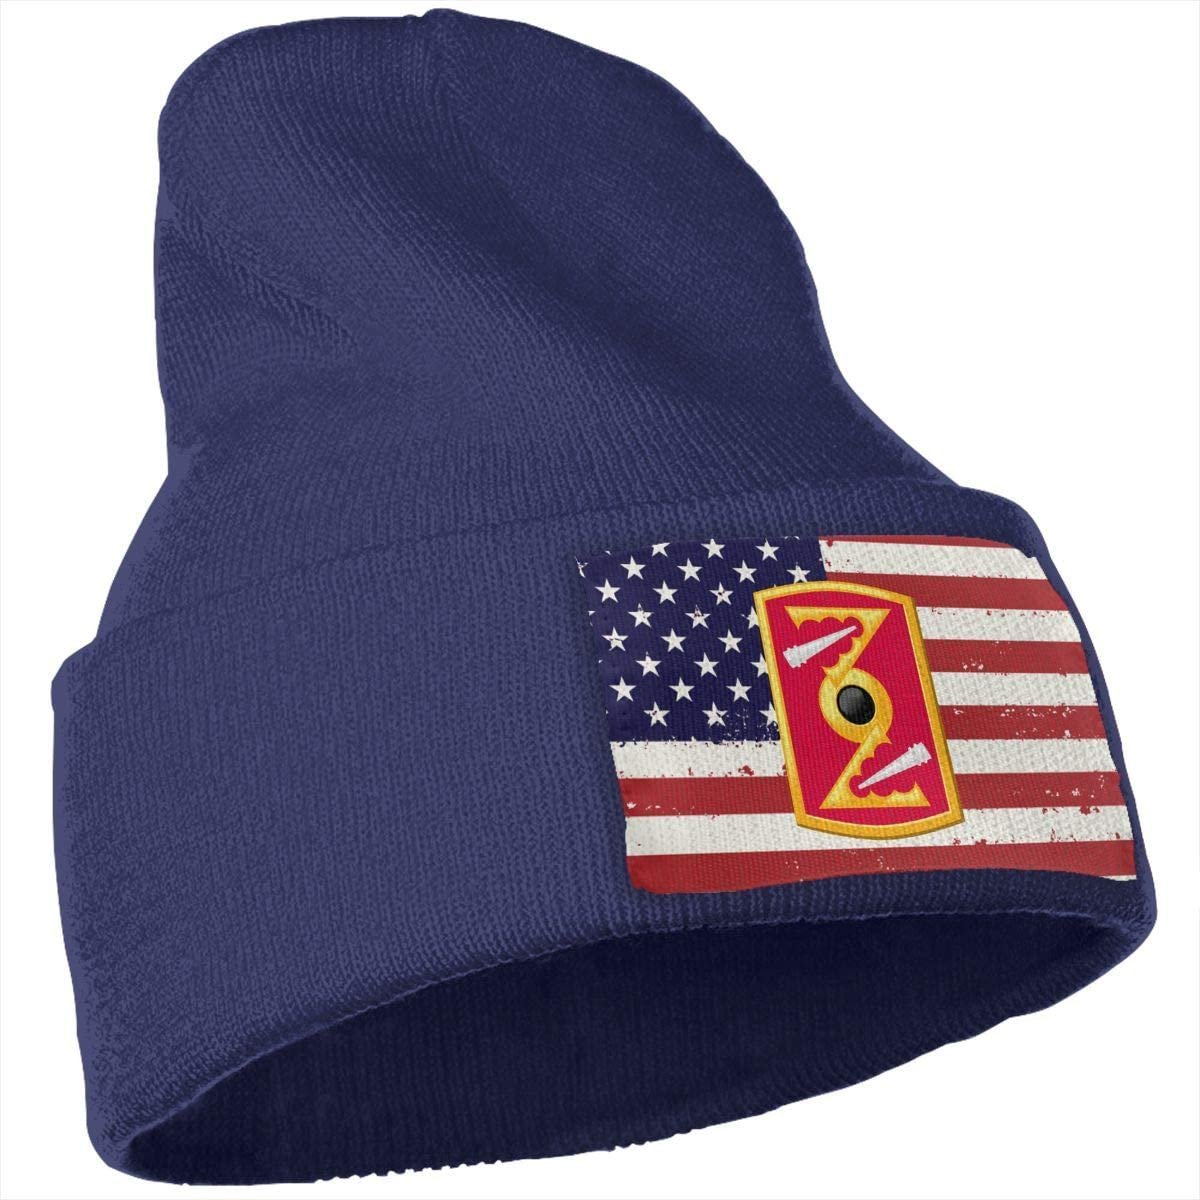 Jkilopd US Flag US Army 72nd Field Artillery Brigade Beanie Knitted Hat Skull Cap